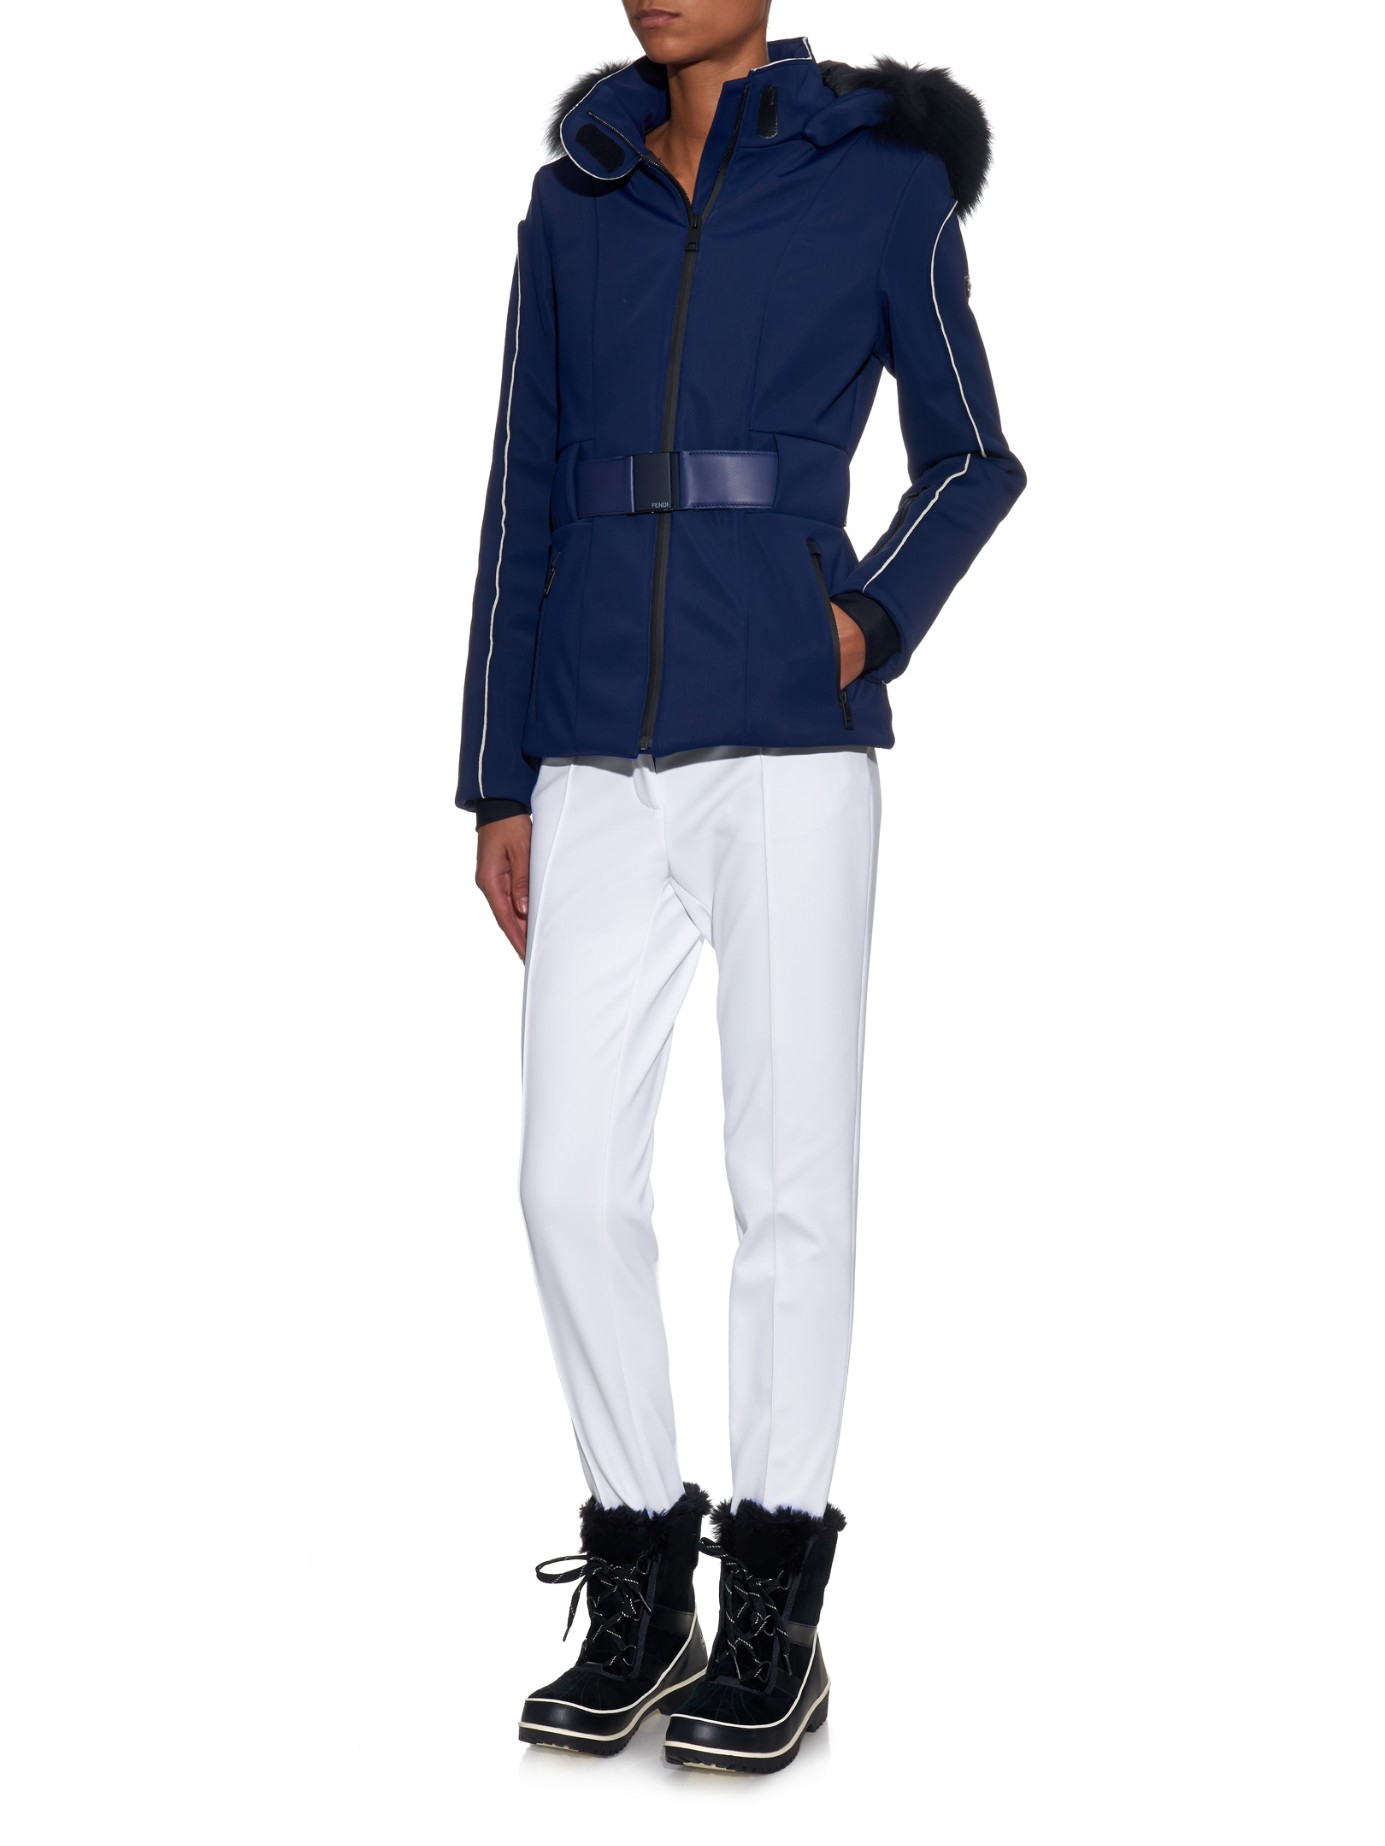 Lyst - Fendi Fox-Fur-Trimmed Hooded Ski Jacket in Blue f308f3856